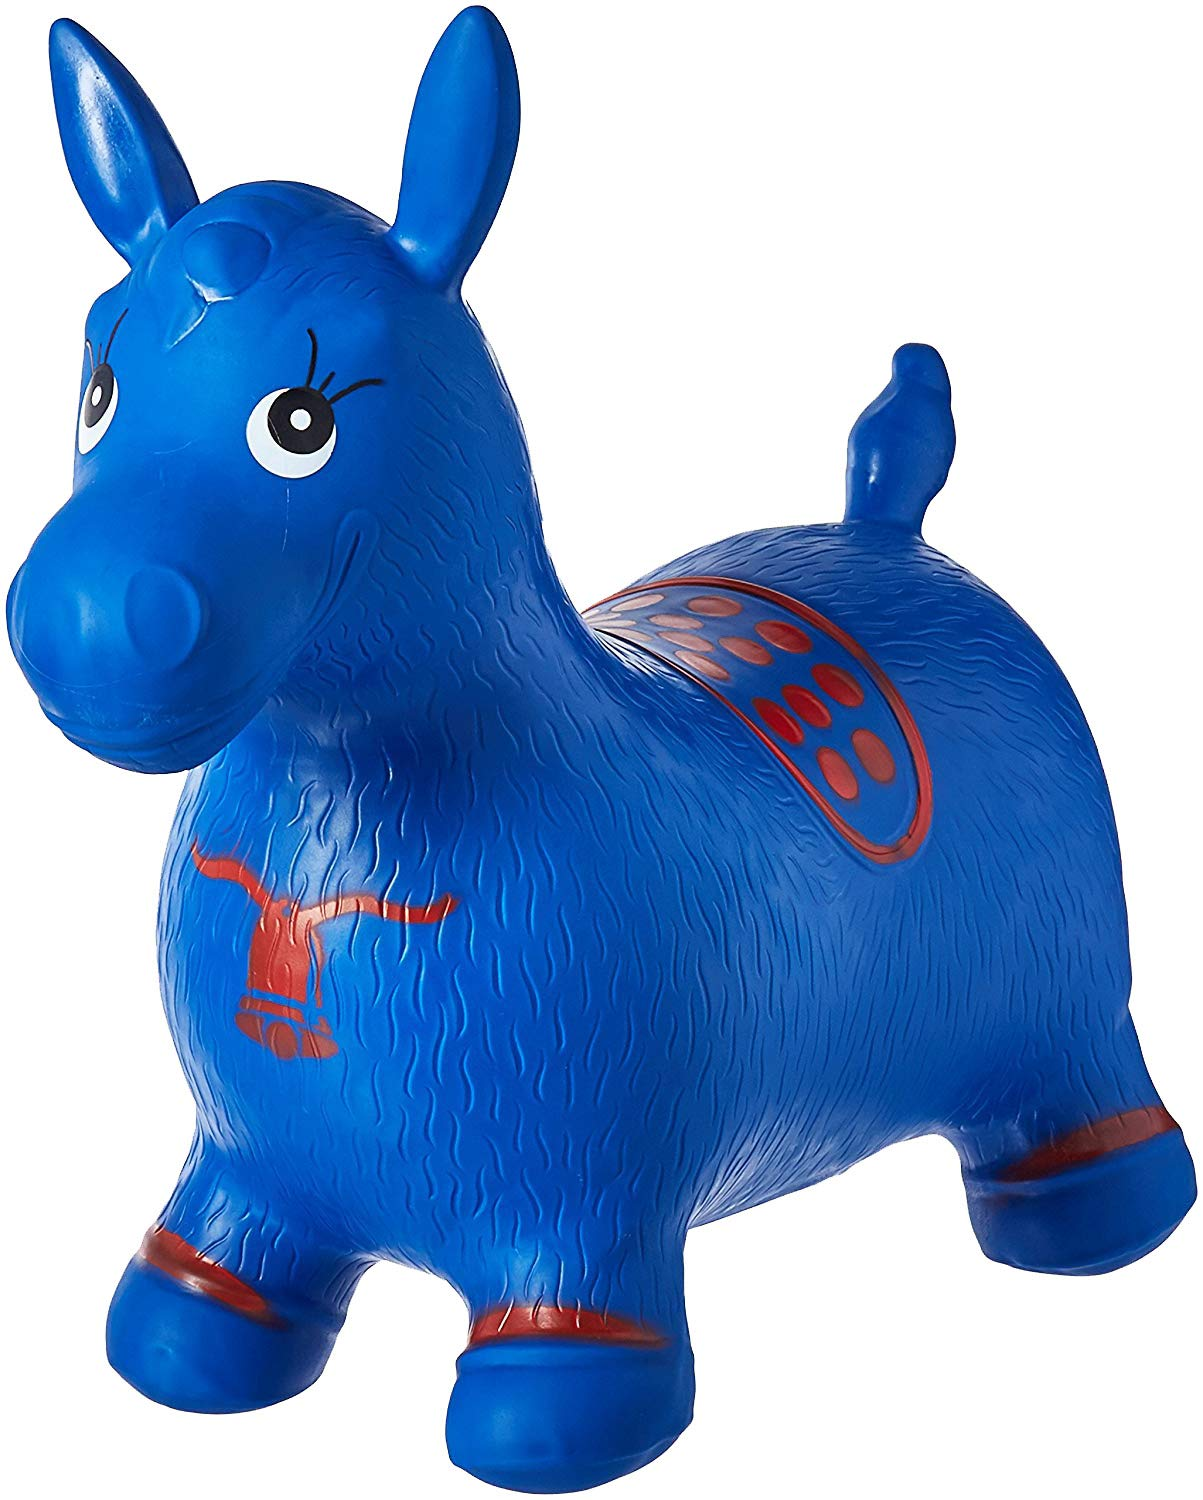 Blue Horse Hopper, Pump Included (Inflatable Space Hopper, Jumping Horse, Ride-on Bouncy Animal) by AppleRound